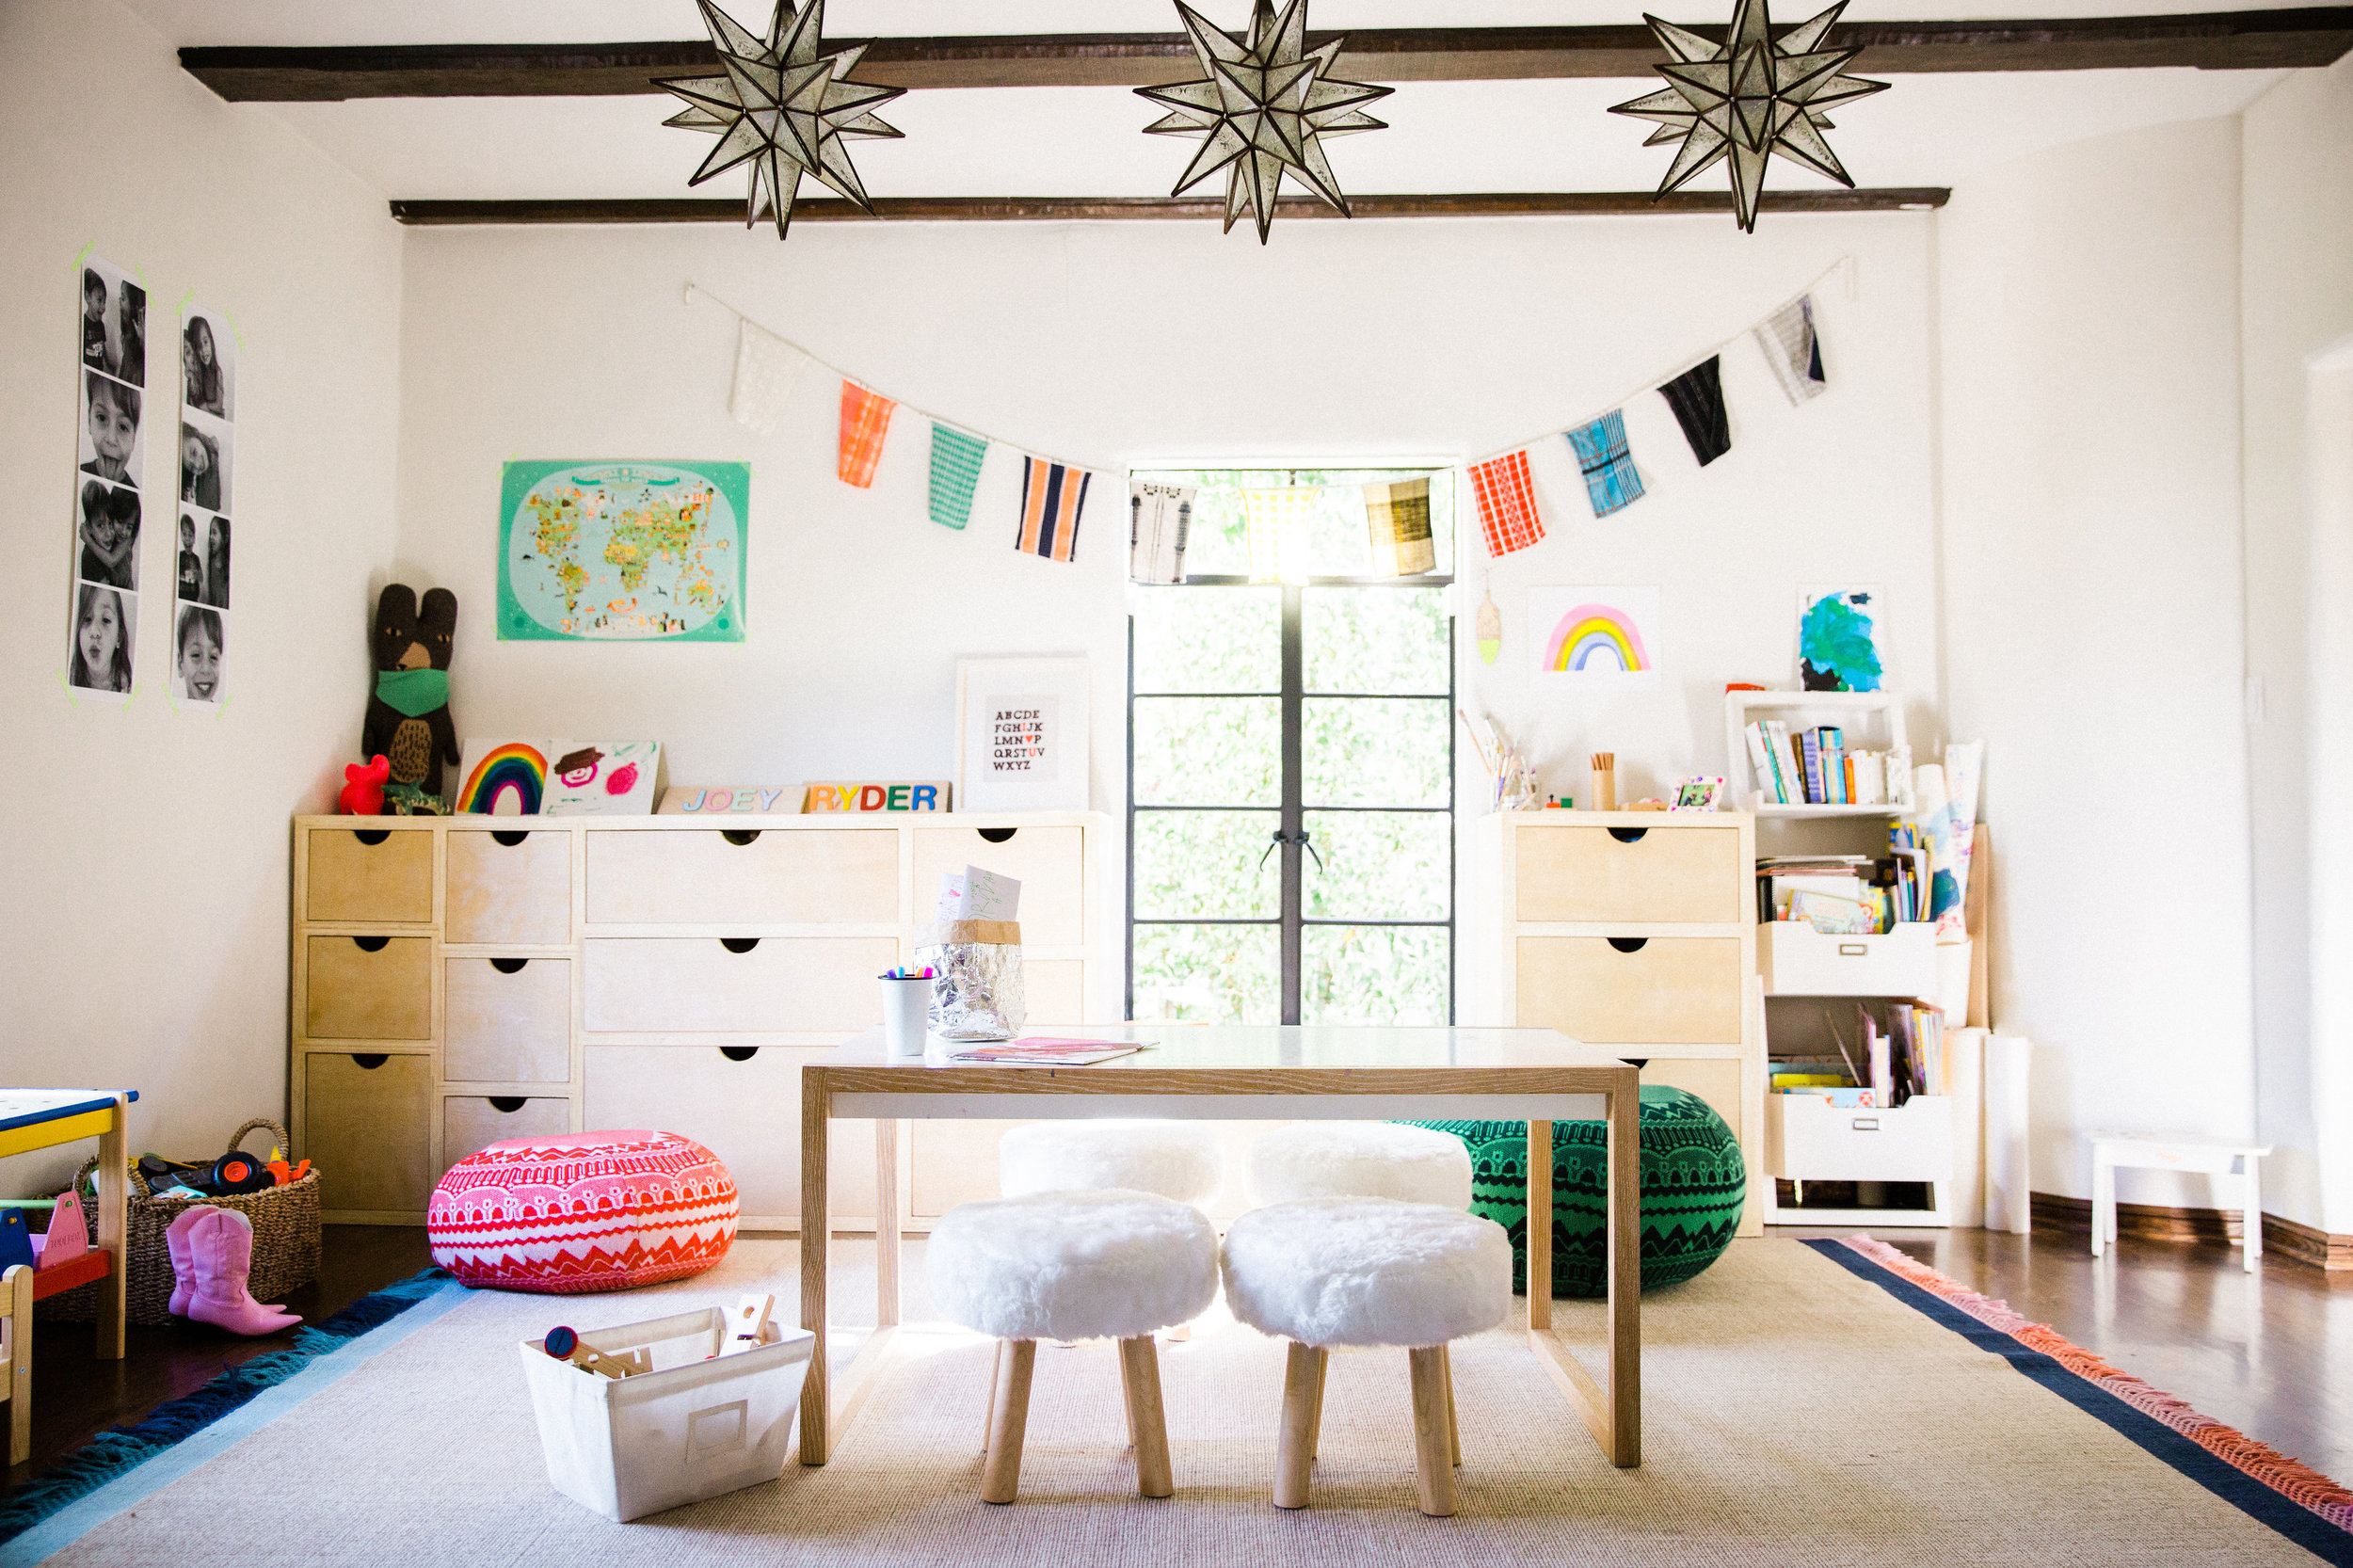 cup-of-jo_home-tour_corleto-family_los-angeles-159 (2).jpg